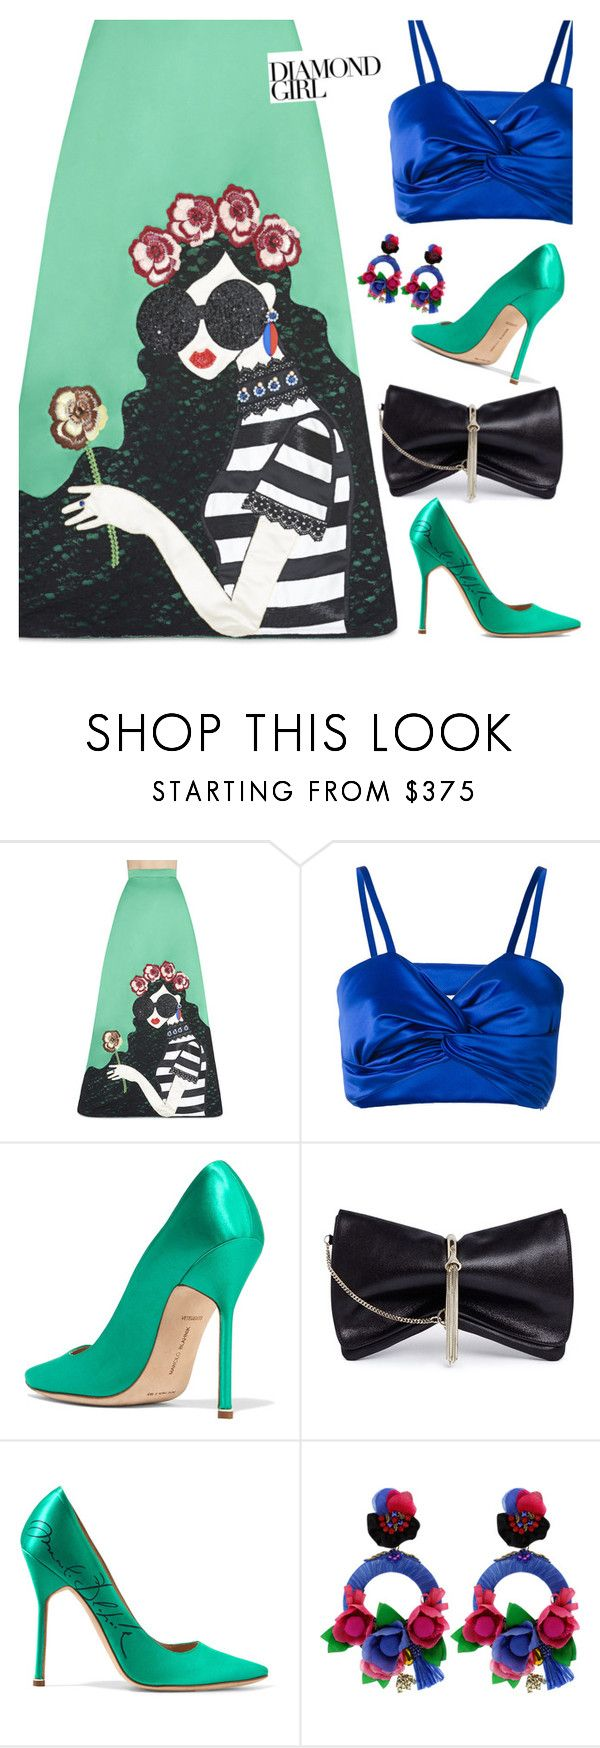 """""""Bright gown!"""" by lence-59 ❤ liked on Polyvore featuring Alice + Olivia, Sadie Williams, Vetements, Jimmy Choo and Ranjana Khan"""